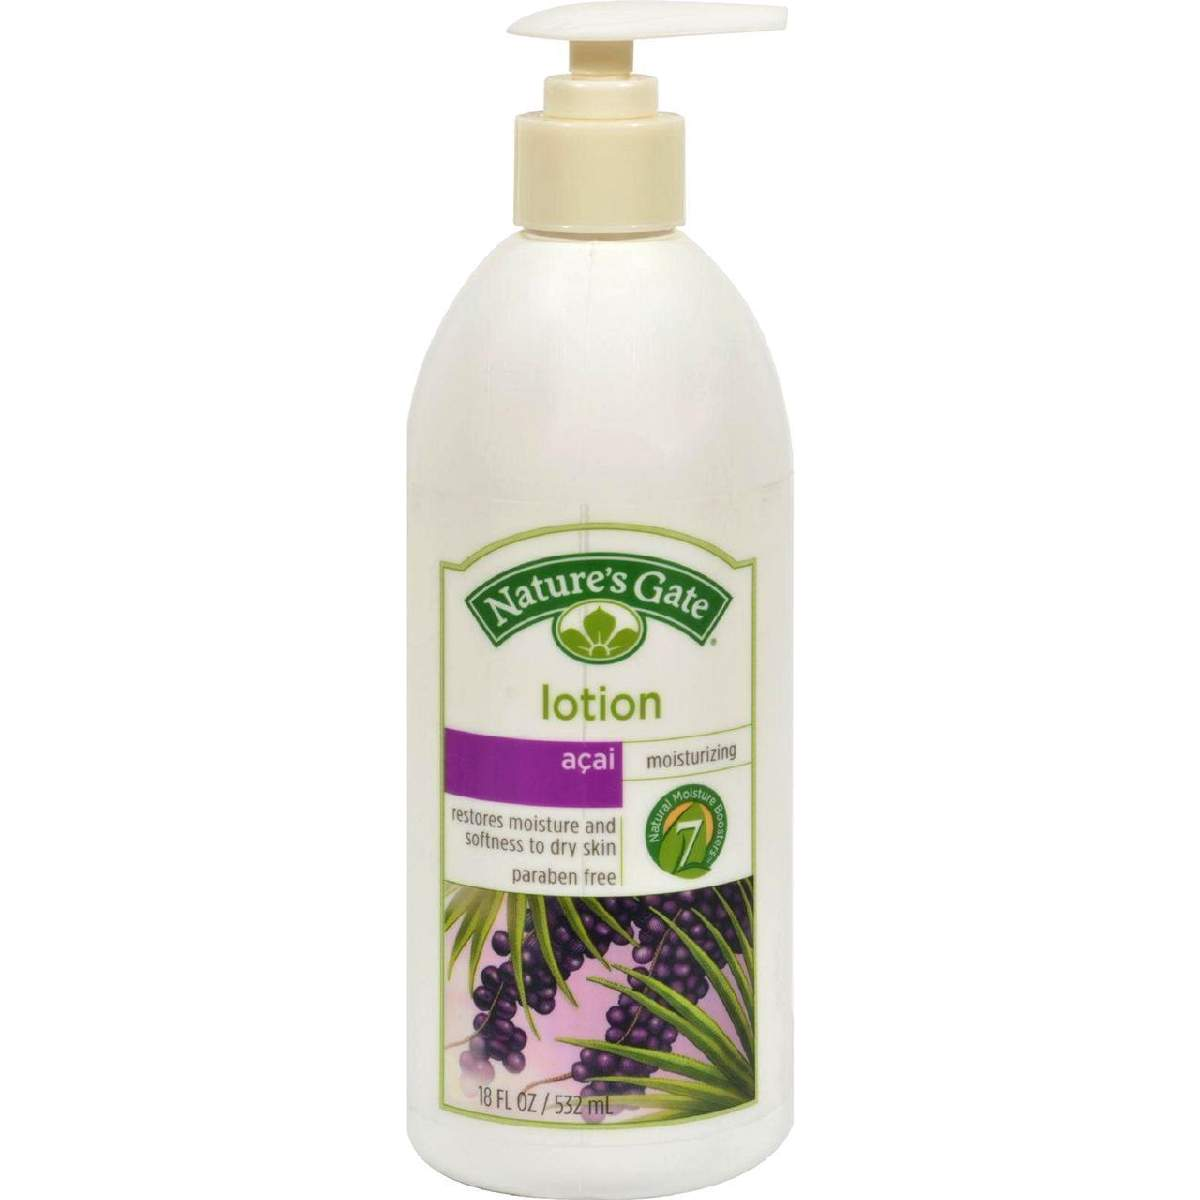 Natures Gate Acai Moisturizing Lotion - 18 Fl Oz